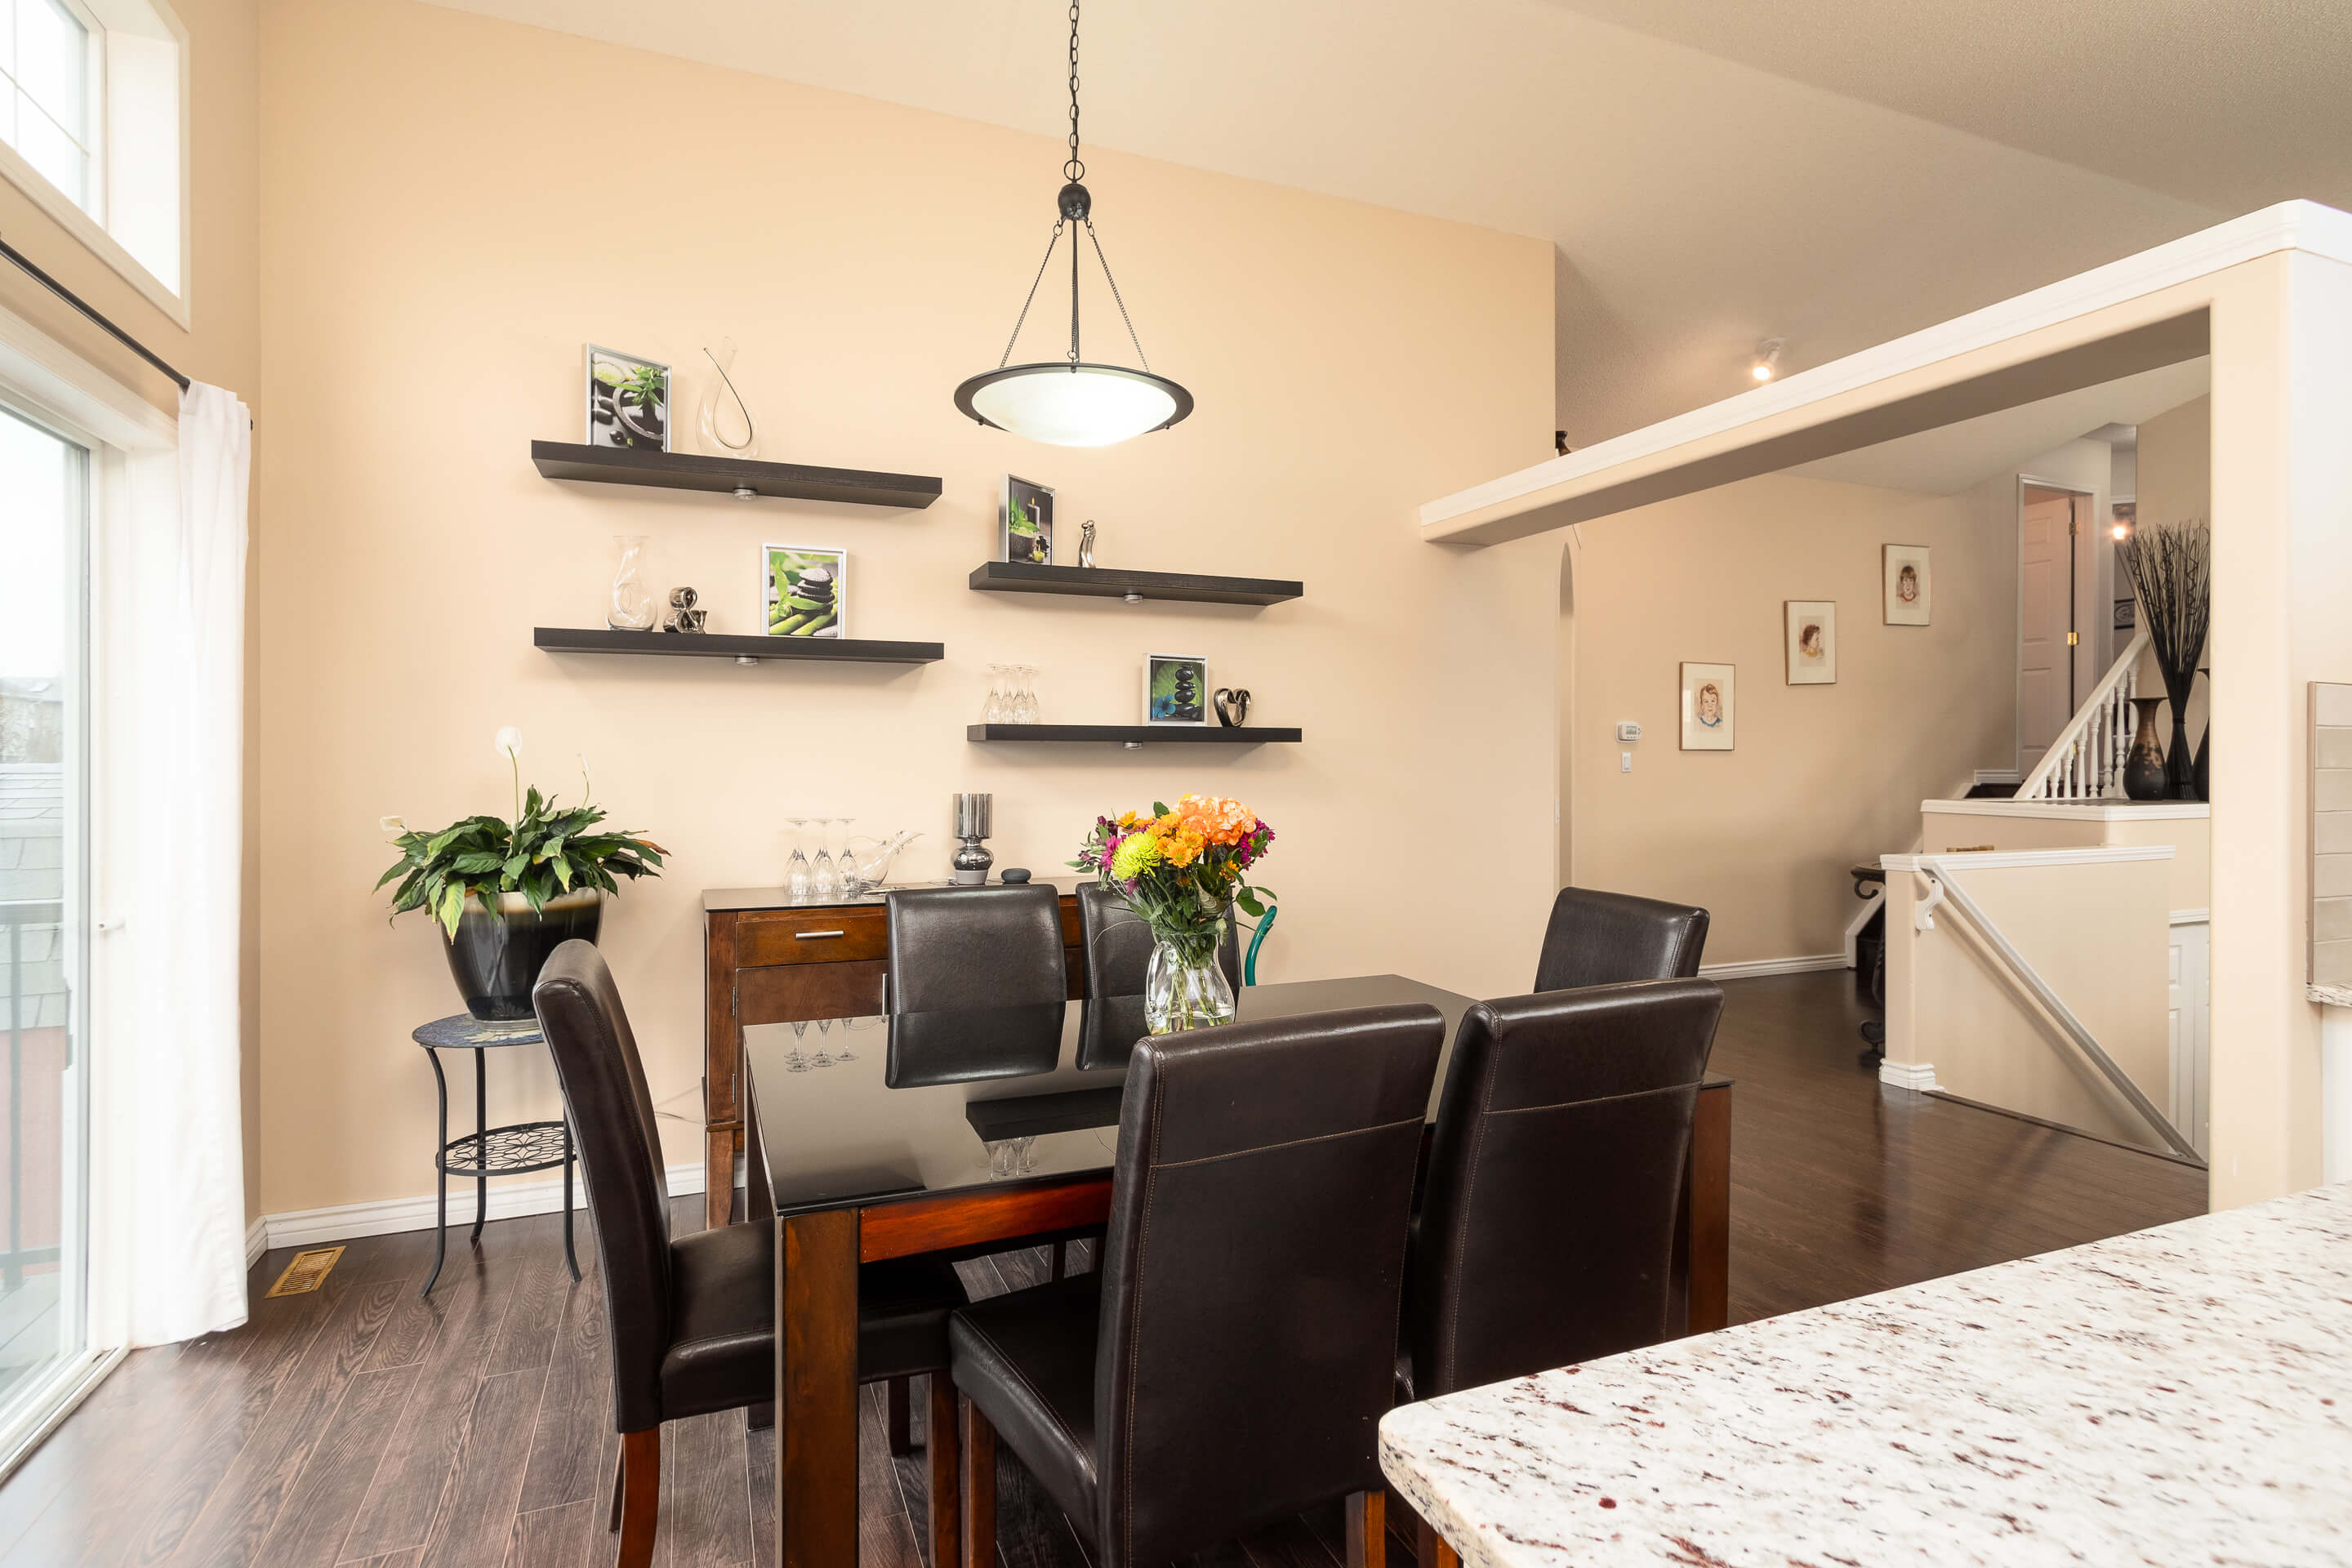 Hello Gorgeous - 225 Stonegate Crescent NW Airdrie - Tara Molina Real Estate (13 of 37)